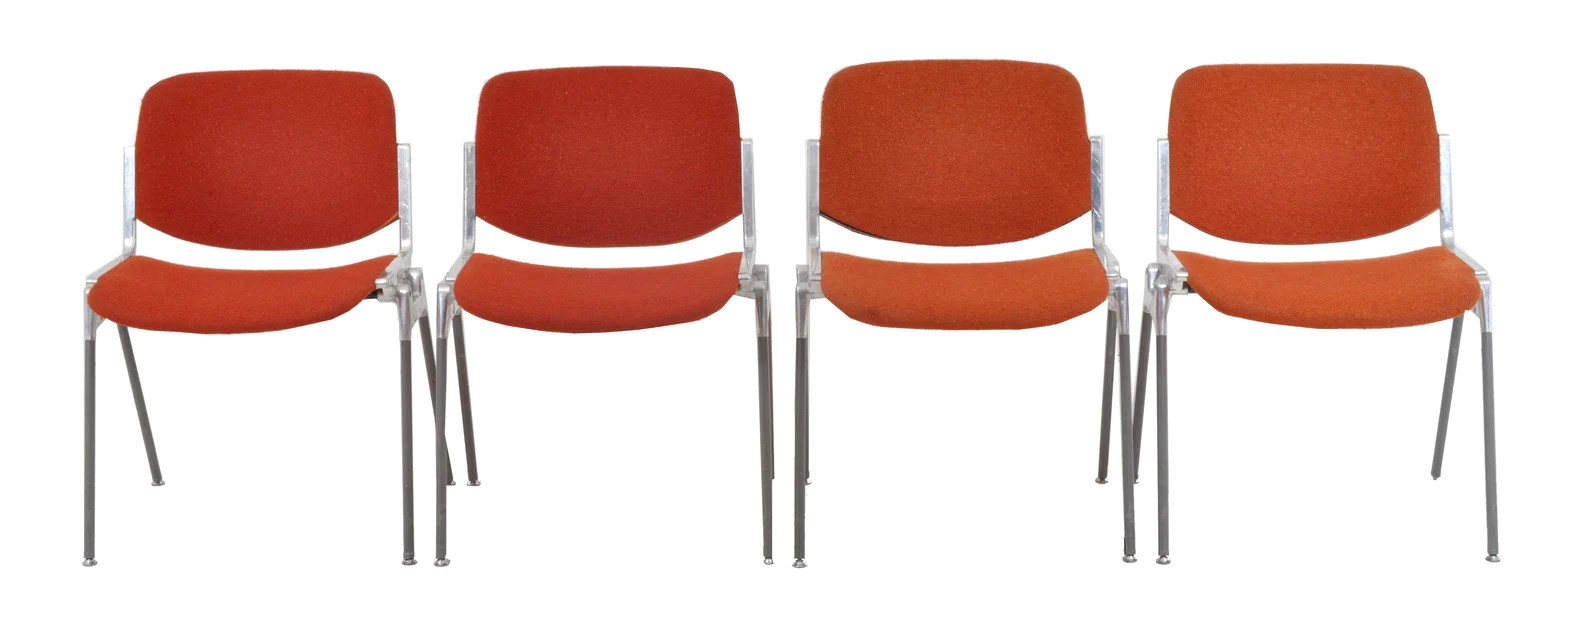 Set Of 4 Italian Mid Century Modern Stacking Chairs By Giancarlo Piretti For Castelli 1960s